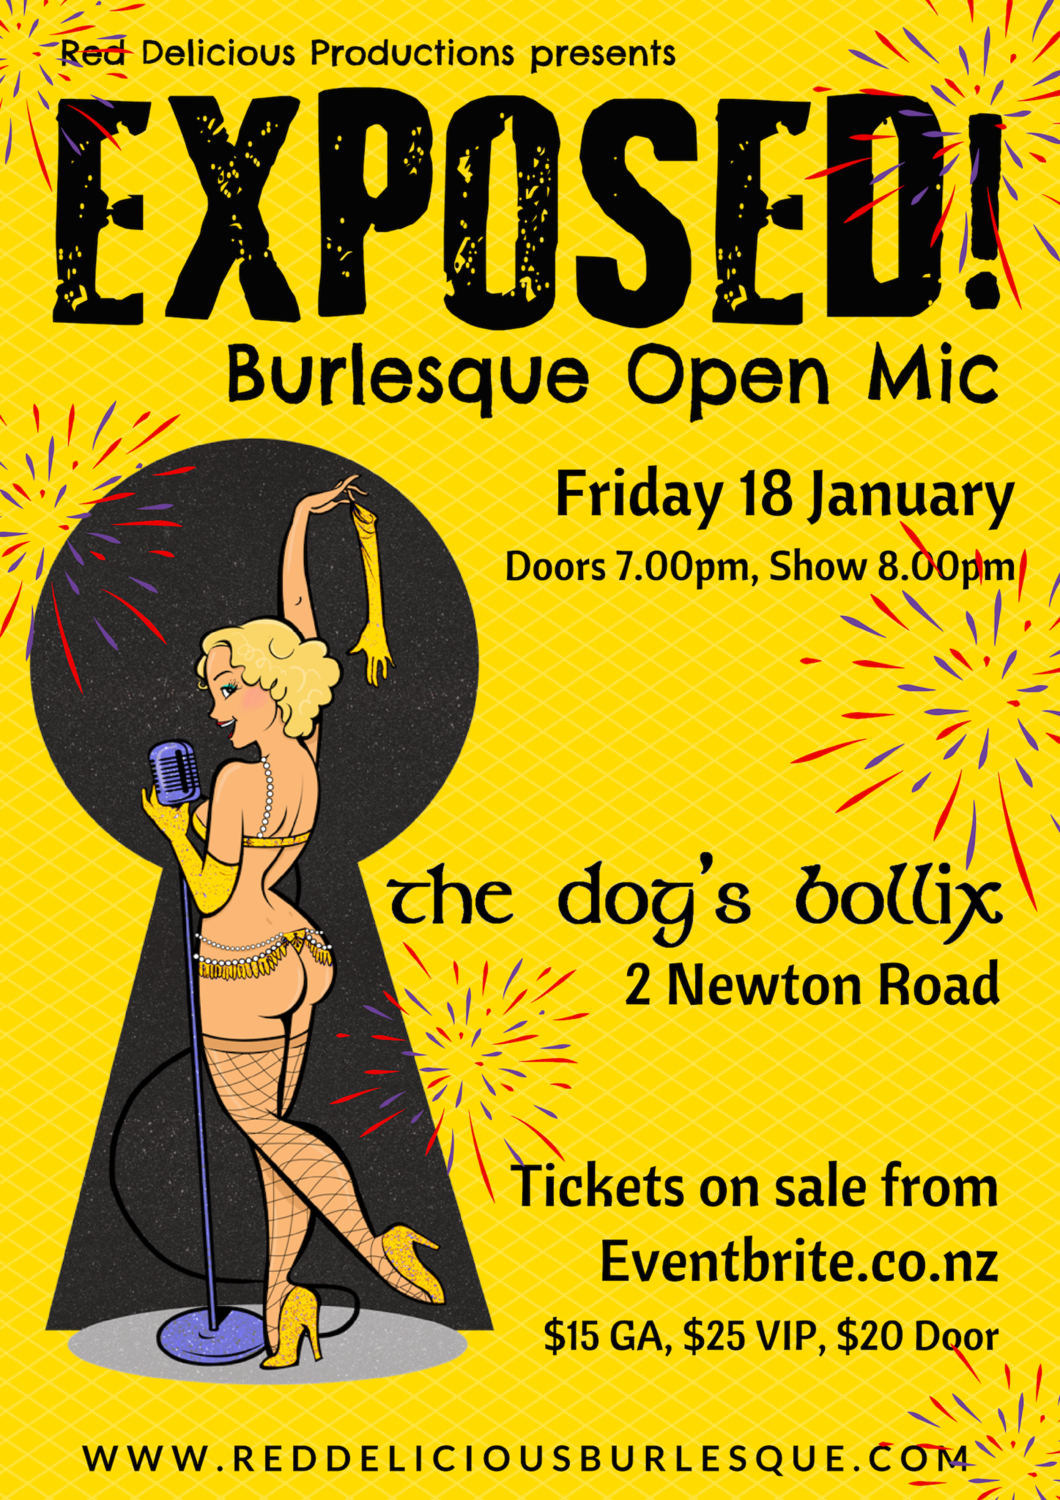 Exposed! Burlesque Open Mic - January